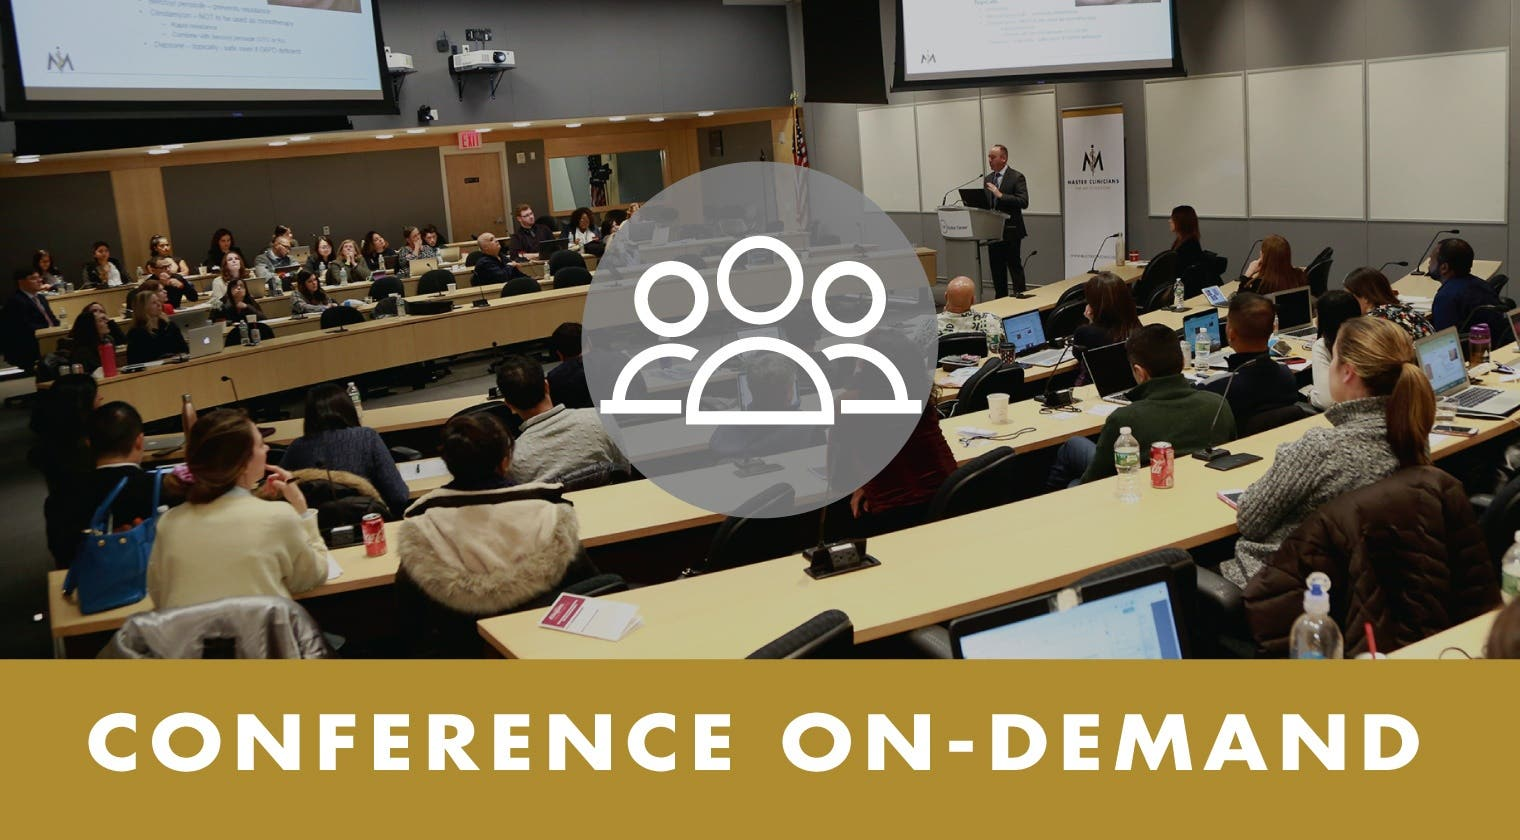 Conference On-Demand